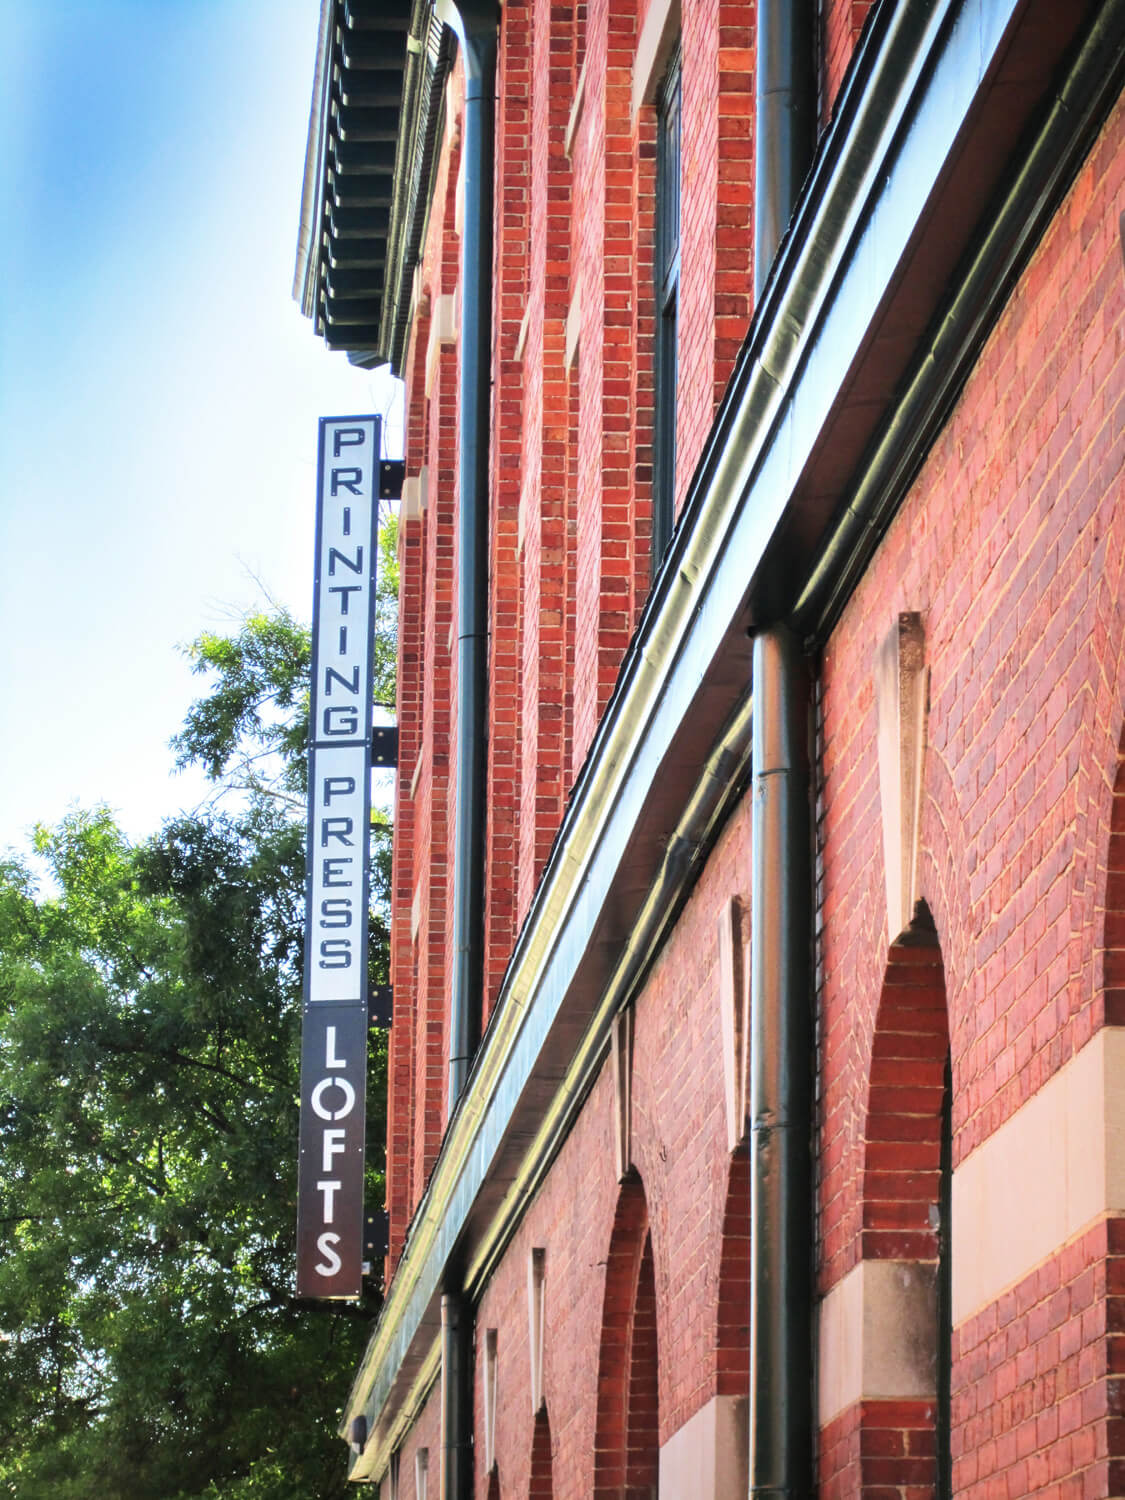 Printing Press Lofts Designed by Foshee Architecture – Exterior Blade Sign